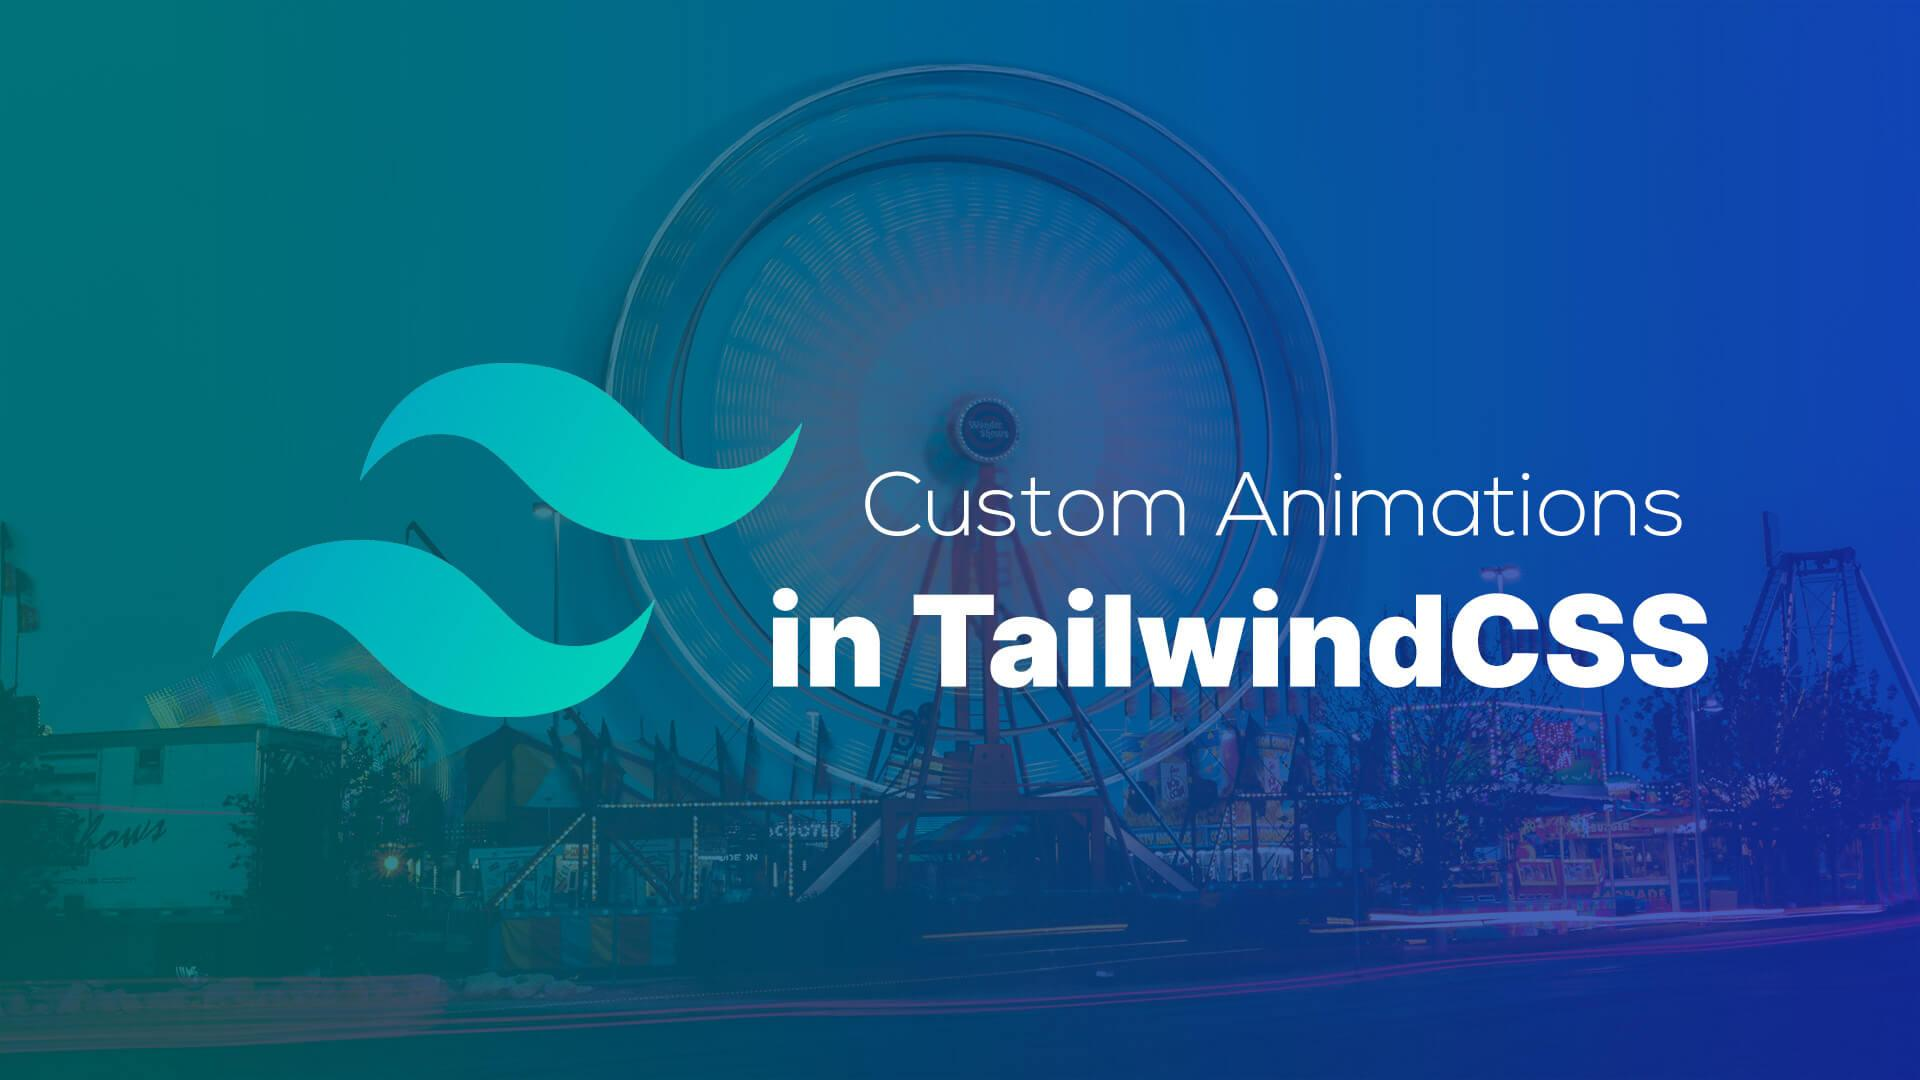 Custom Animations in TailwindCSS